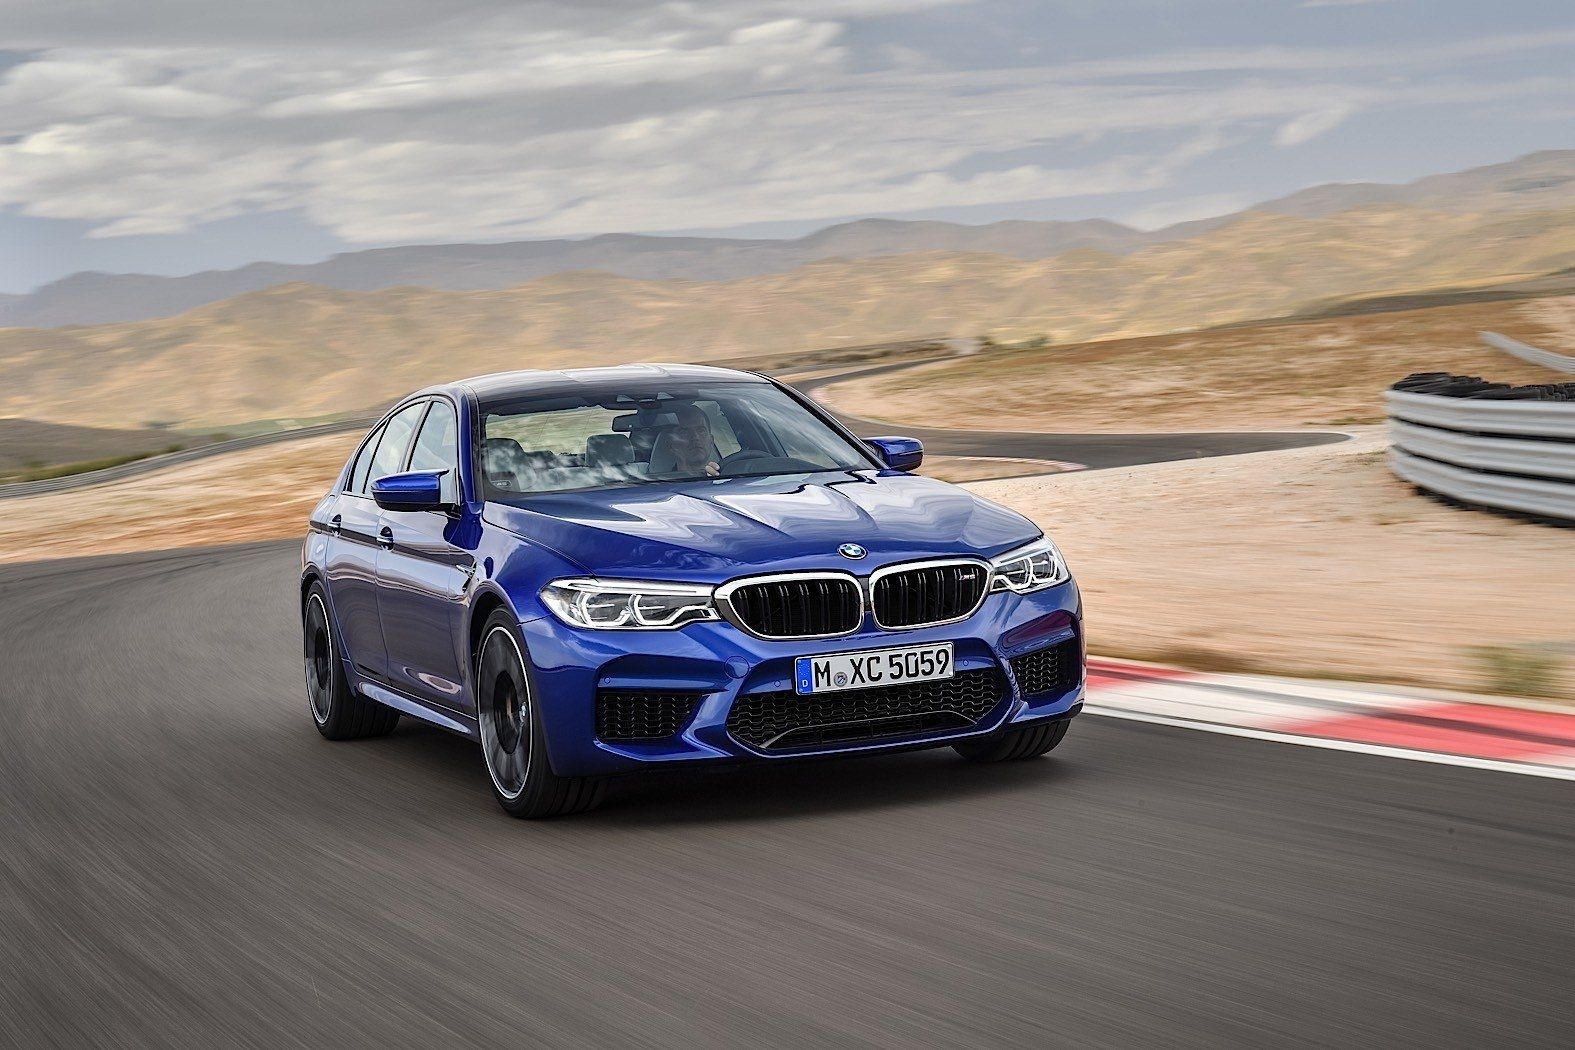 81 The 2020 BMW M5 Xdrive Awd Prices